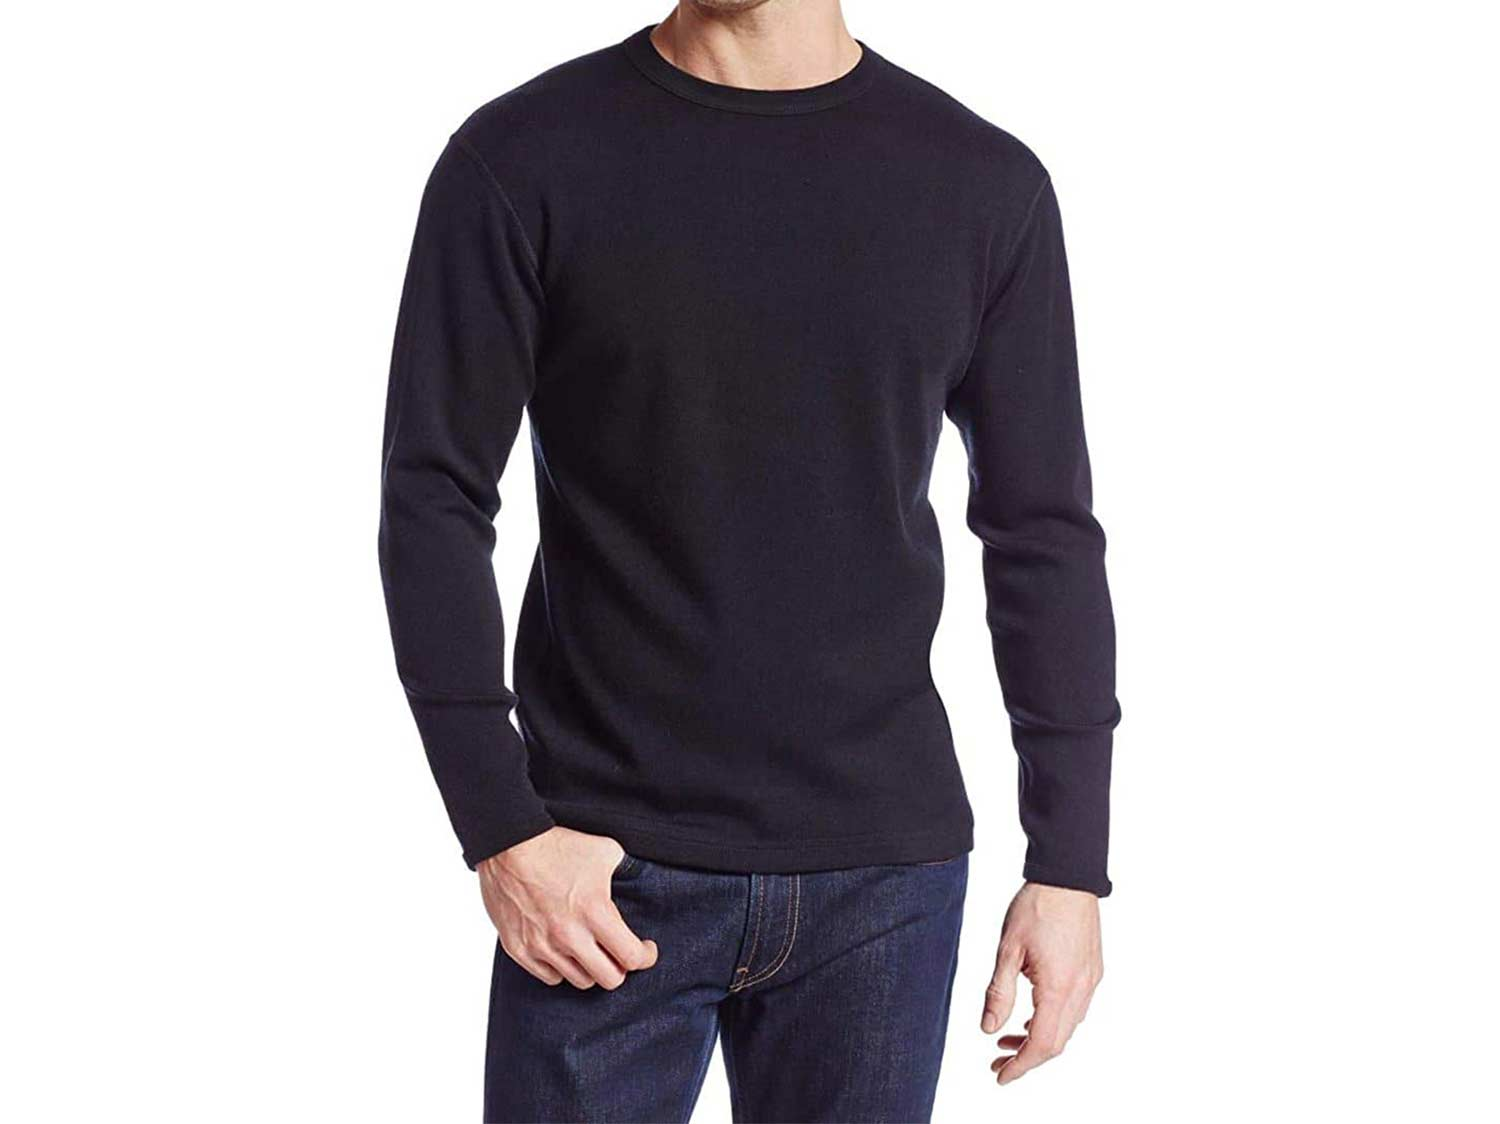 Minus33 Merino Wool 707 Yukon Men's Expedition Weight Crew